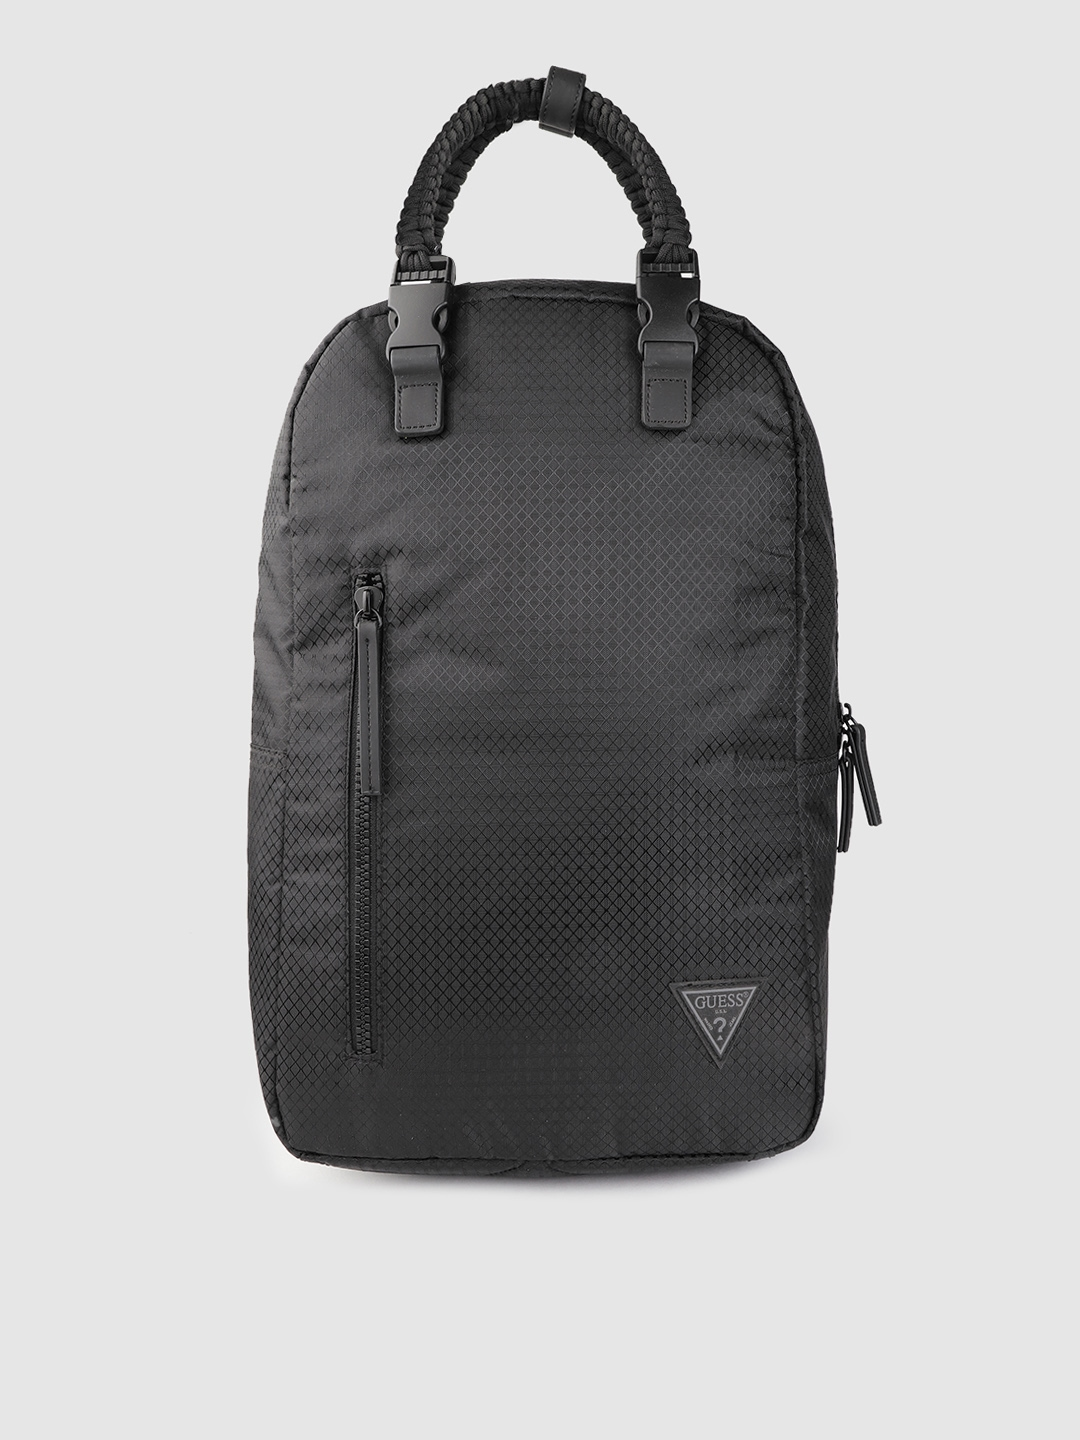 GUESS Women Black Textured 14 Inch Laptop Backpack